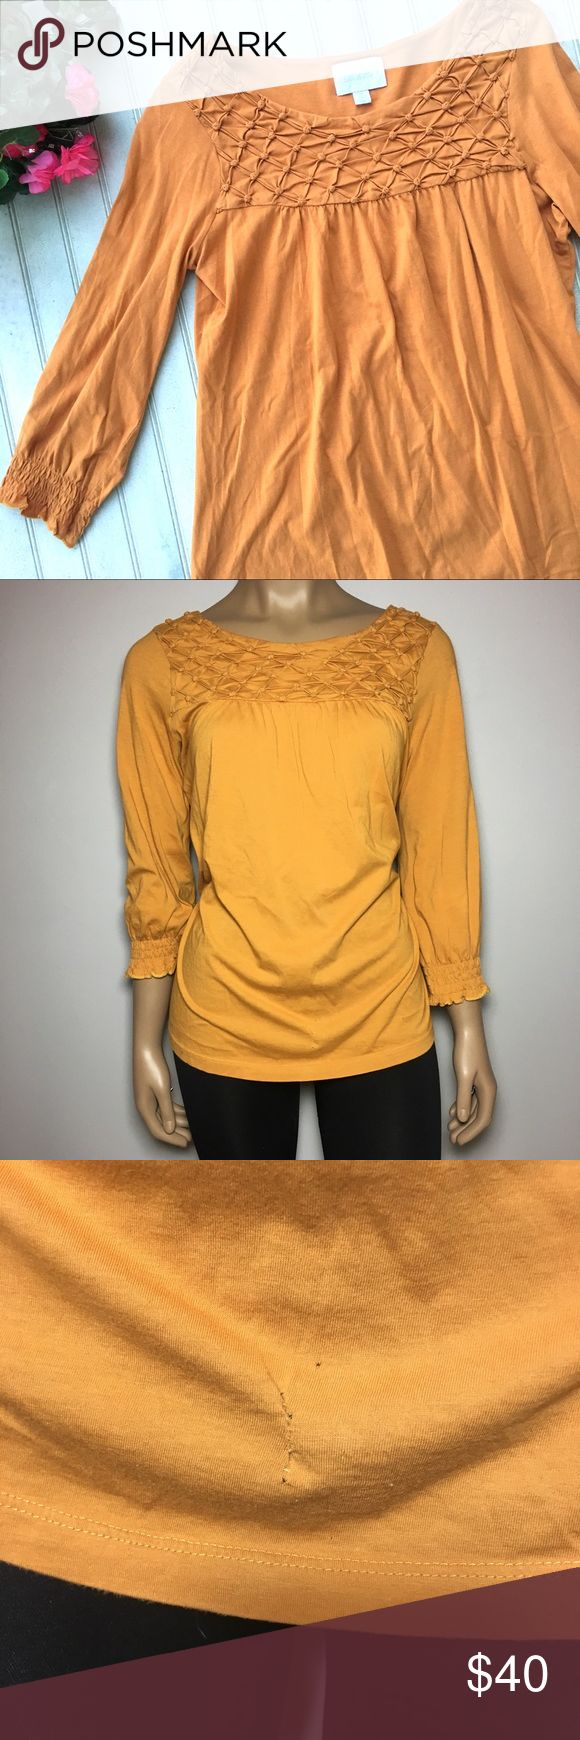 Deletta Anthropologie Orange Long Sleeve Top Deletta Anthropologie Orange Blouse  	⁃	Size: M  	⁃	Condition: Excellent Used Condition, however a small hole was repaired on the shirt as pictured  	⁃	Measurements: Chest: 18in across Waist: 16in across Length: 24in Sleeve: 21in All measurements are APPROXIMATE & taken laid flat.  	⁃	Material Makeup: 100% Cotton 📦📫Same to Next Day Shipping! ✖️Don't like the Price? Make an Offer!  ❓Have a Question? Ask!  🍁Bundle & Save! Add item(s) to a bundle…